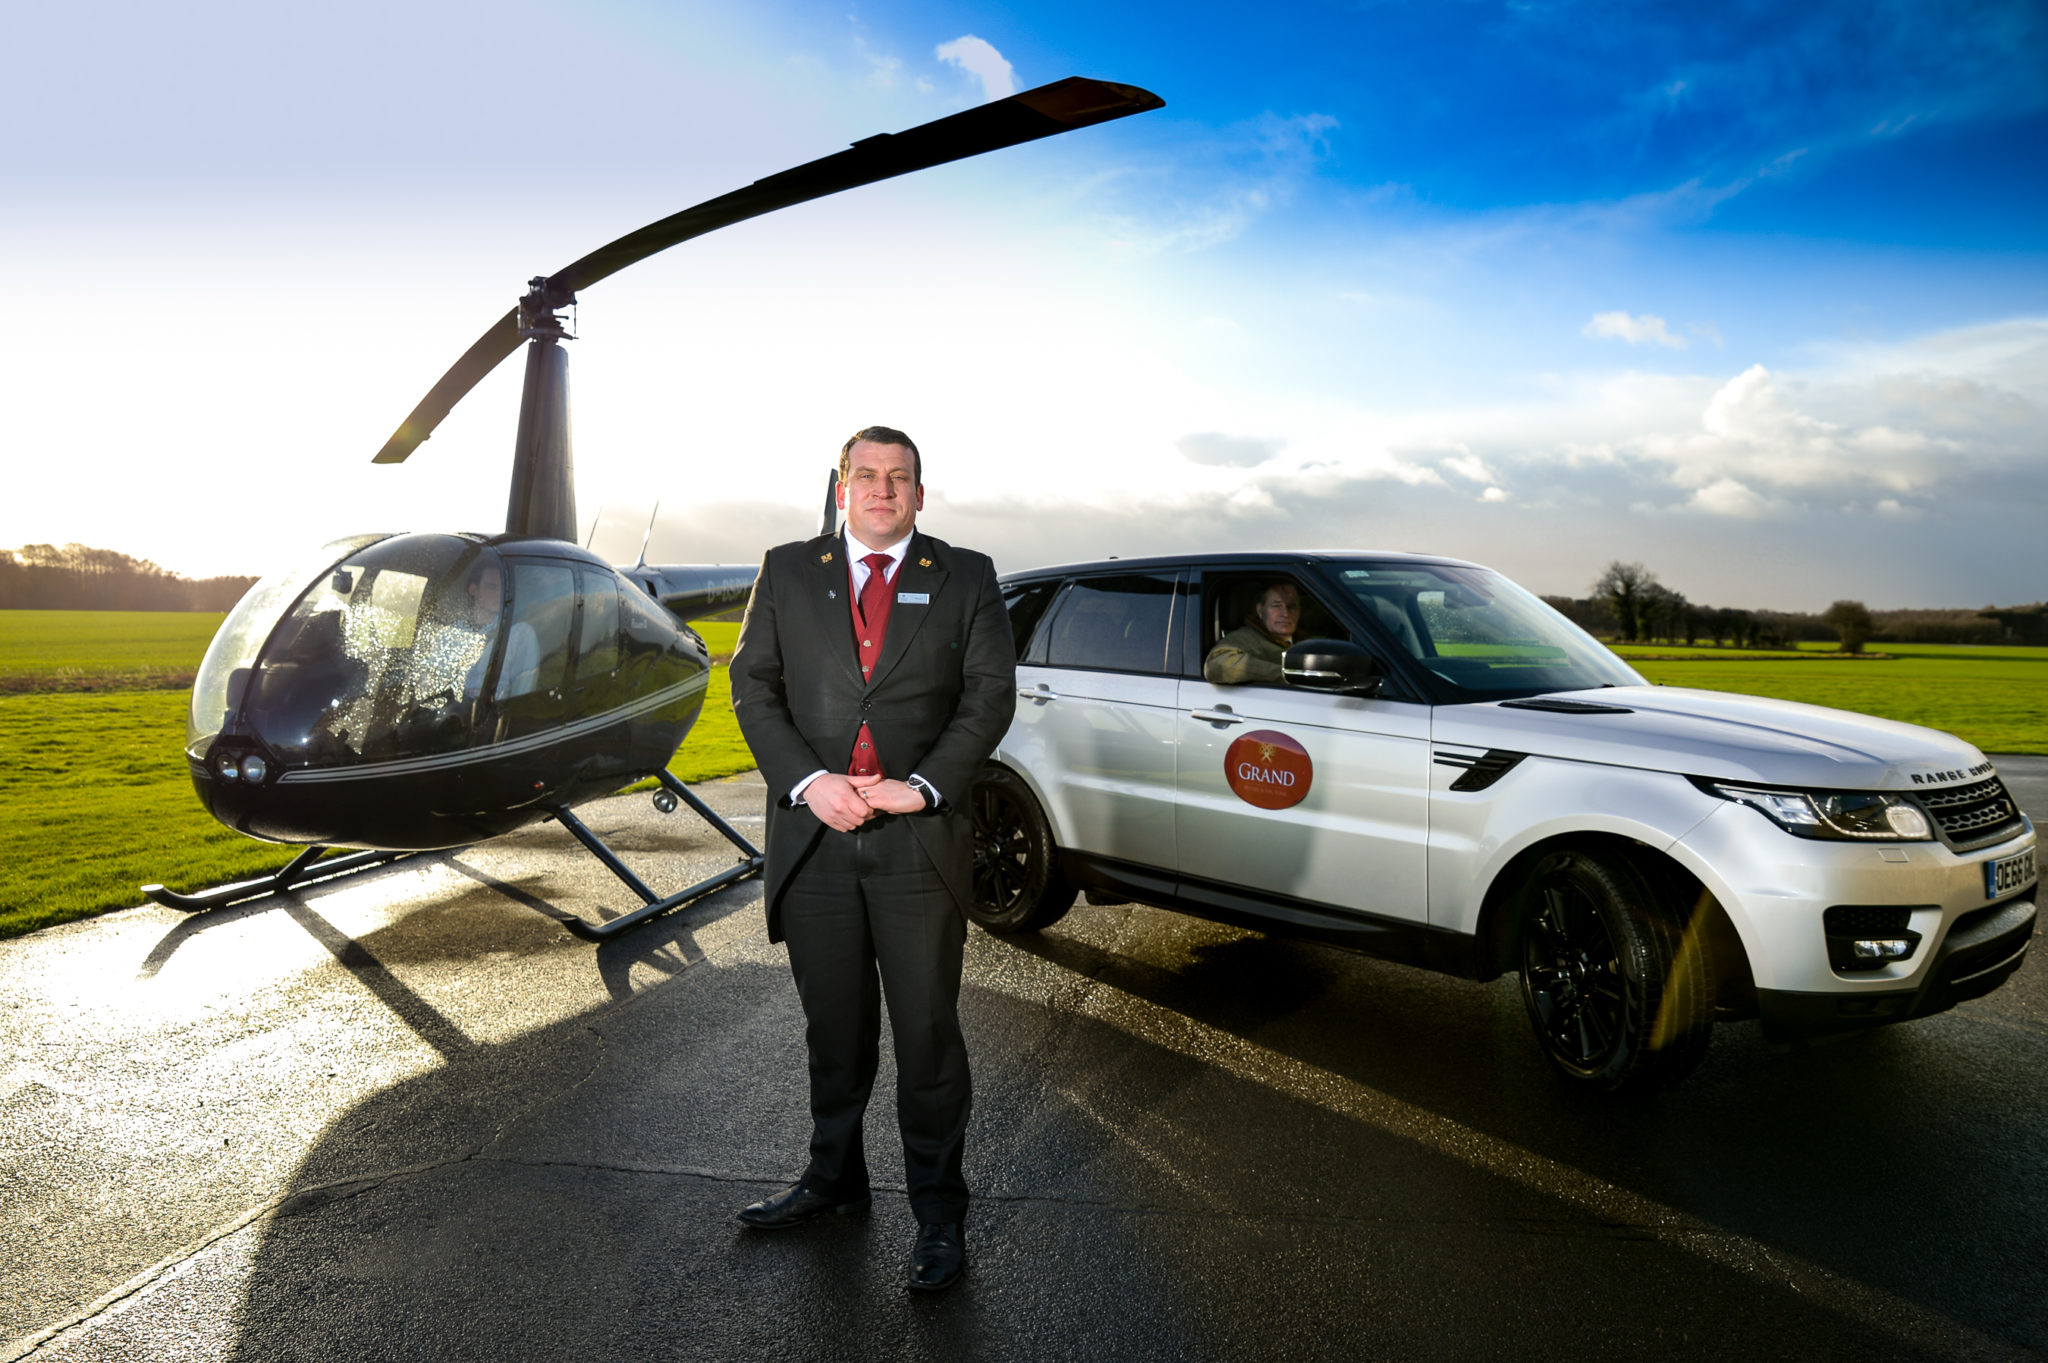 Stewart Reid, Head Concierge at The Grand Hotel & Spa, York, launching the hotel's new helicopter transfer service 4